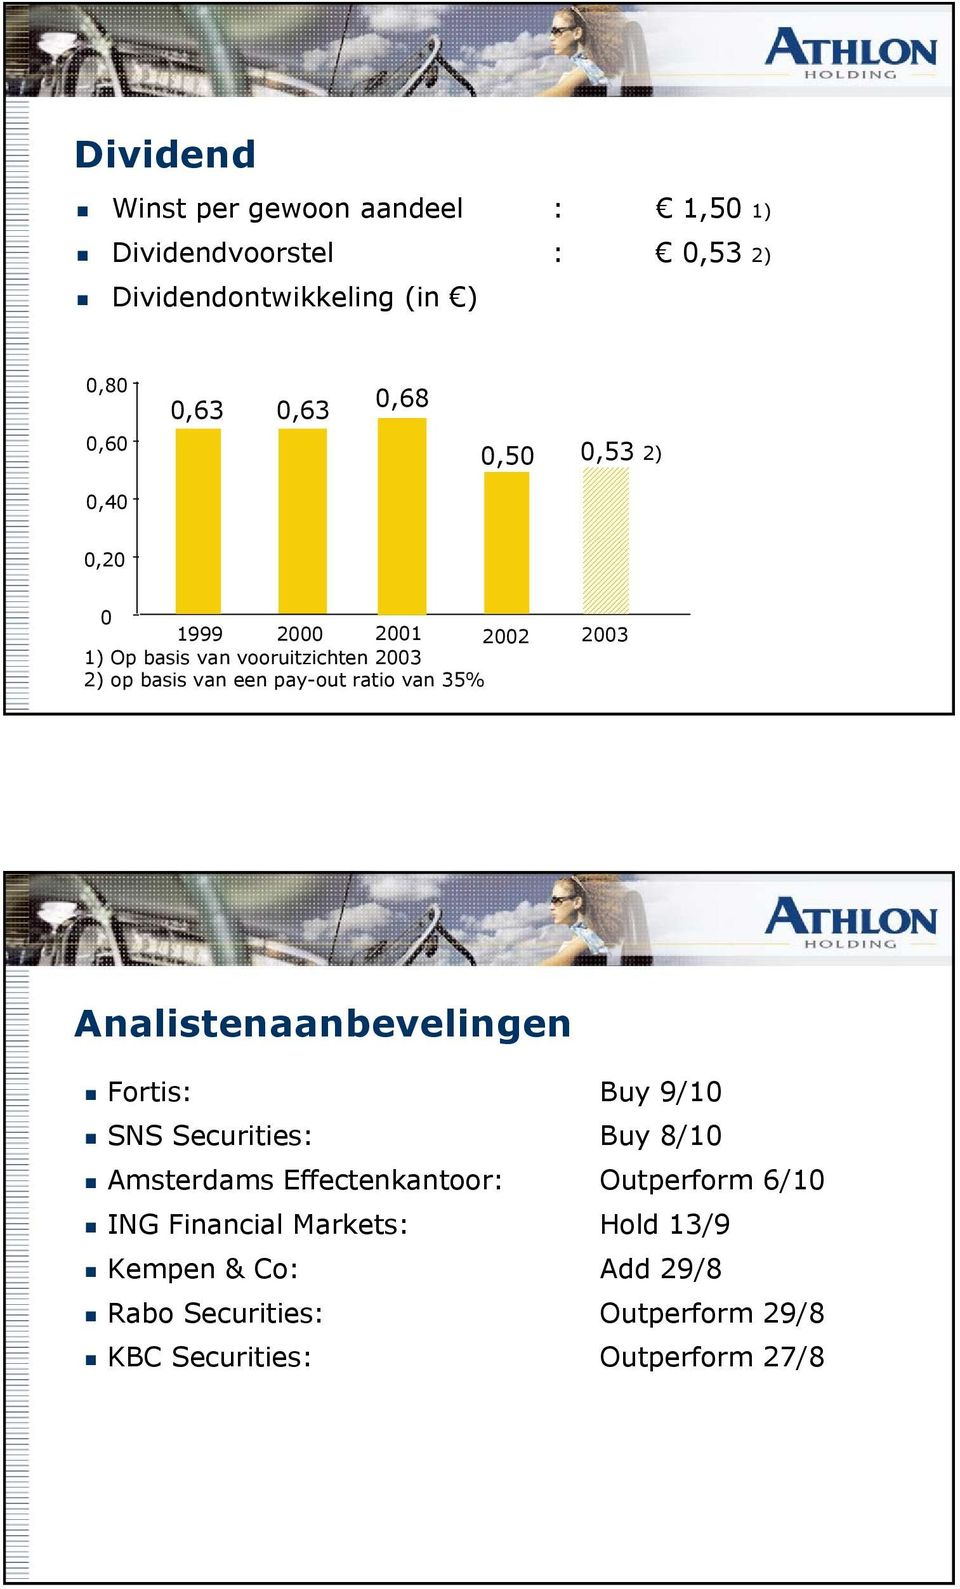 van 35% 2003 Analistenaanbevelingen Fortis: Buy 9/10 SNS Securities: Buy 8/10 Amsterdams Effectenkantoor: Outperform